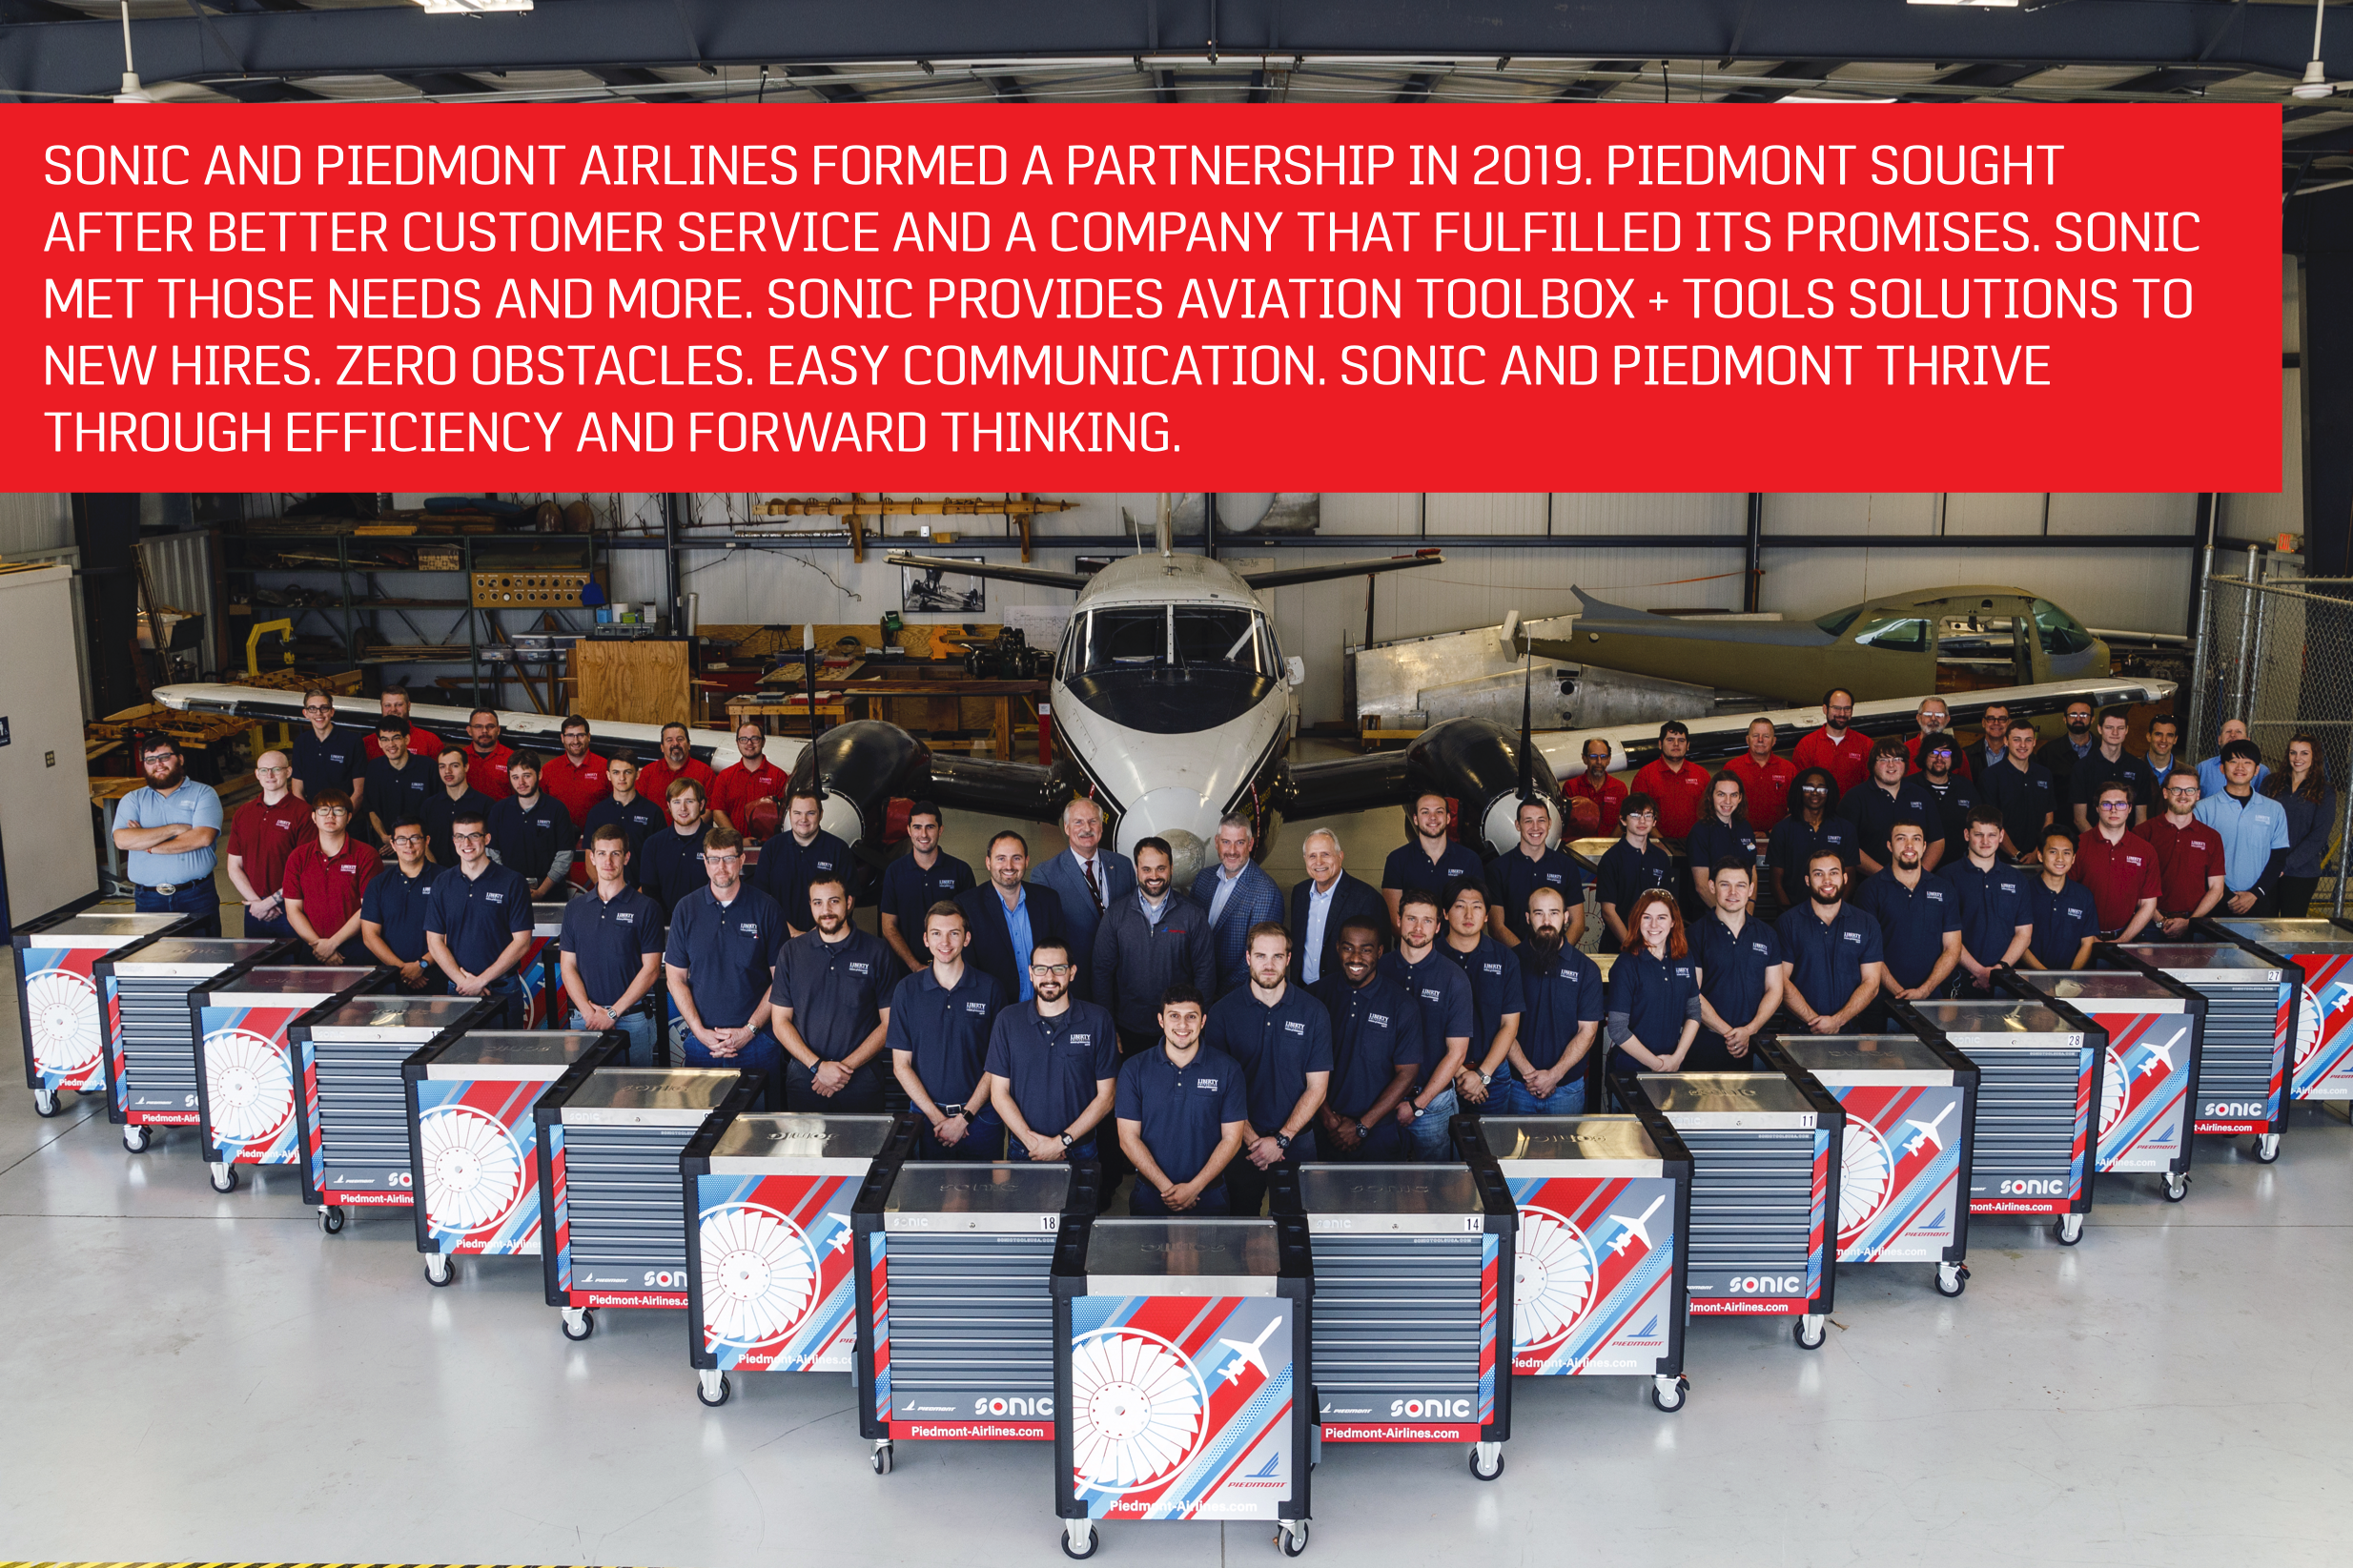 Sonic and Piedmont Airlines formed a partnership in 2019. Piedmont sought after better customer service and a company that fulfilled its promises. Sonic met those needs and more. Sonic provides aviation toolboxes and tool solutions to new hires. Zero obstacles. Easy communication. Sonic and Piedmont thrive through efficiency and forward thinking.